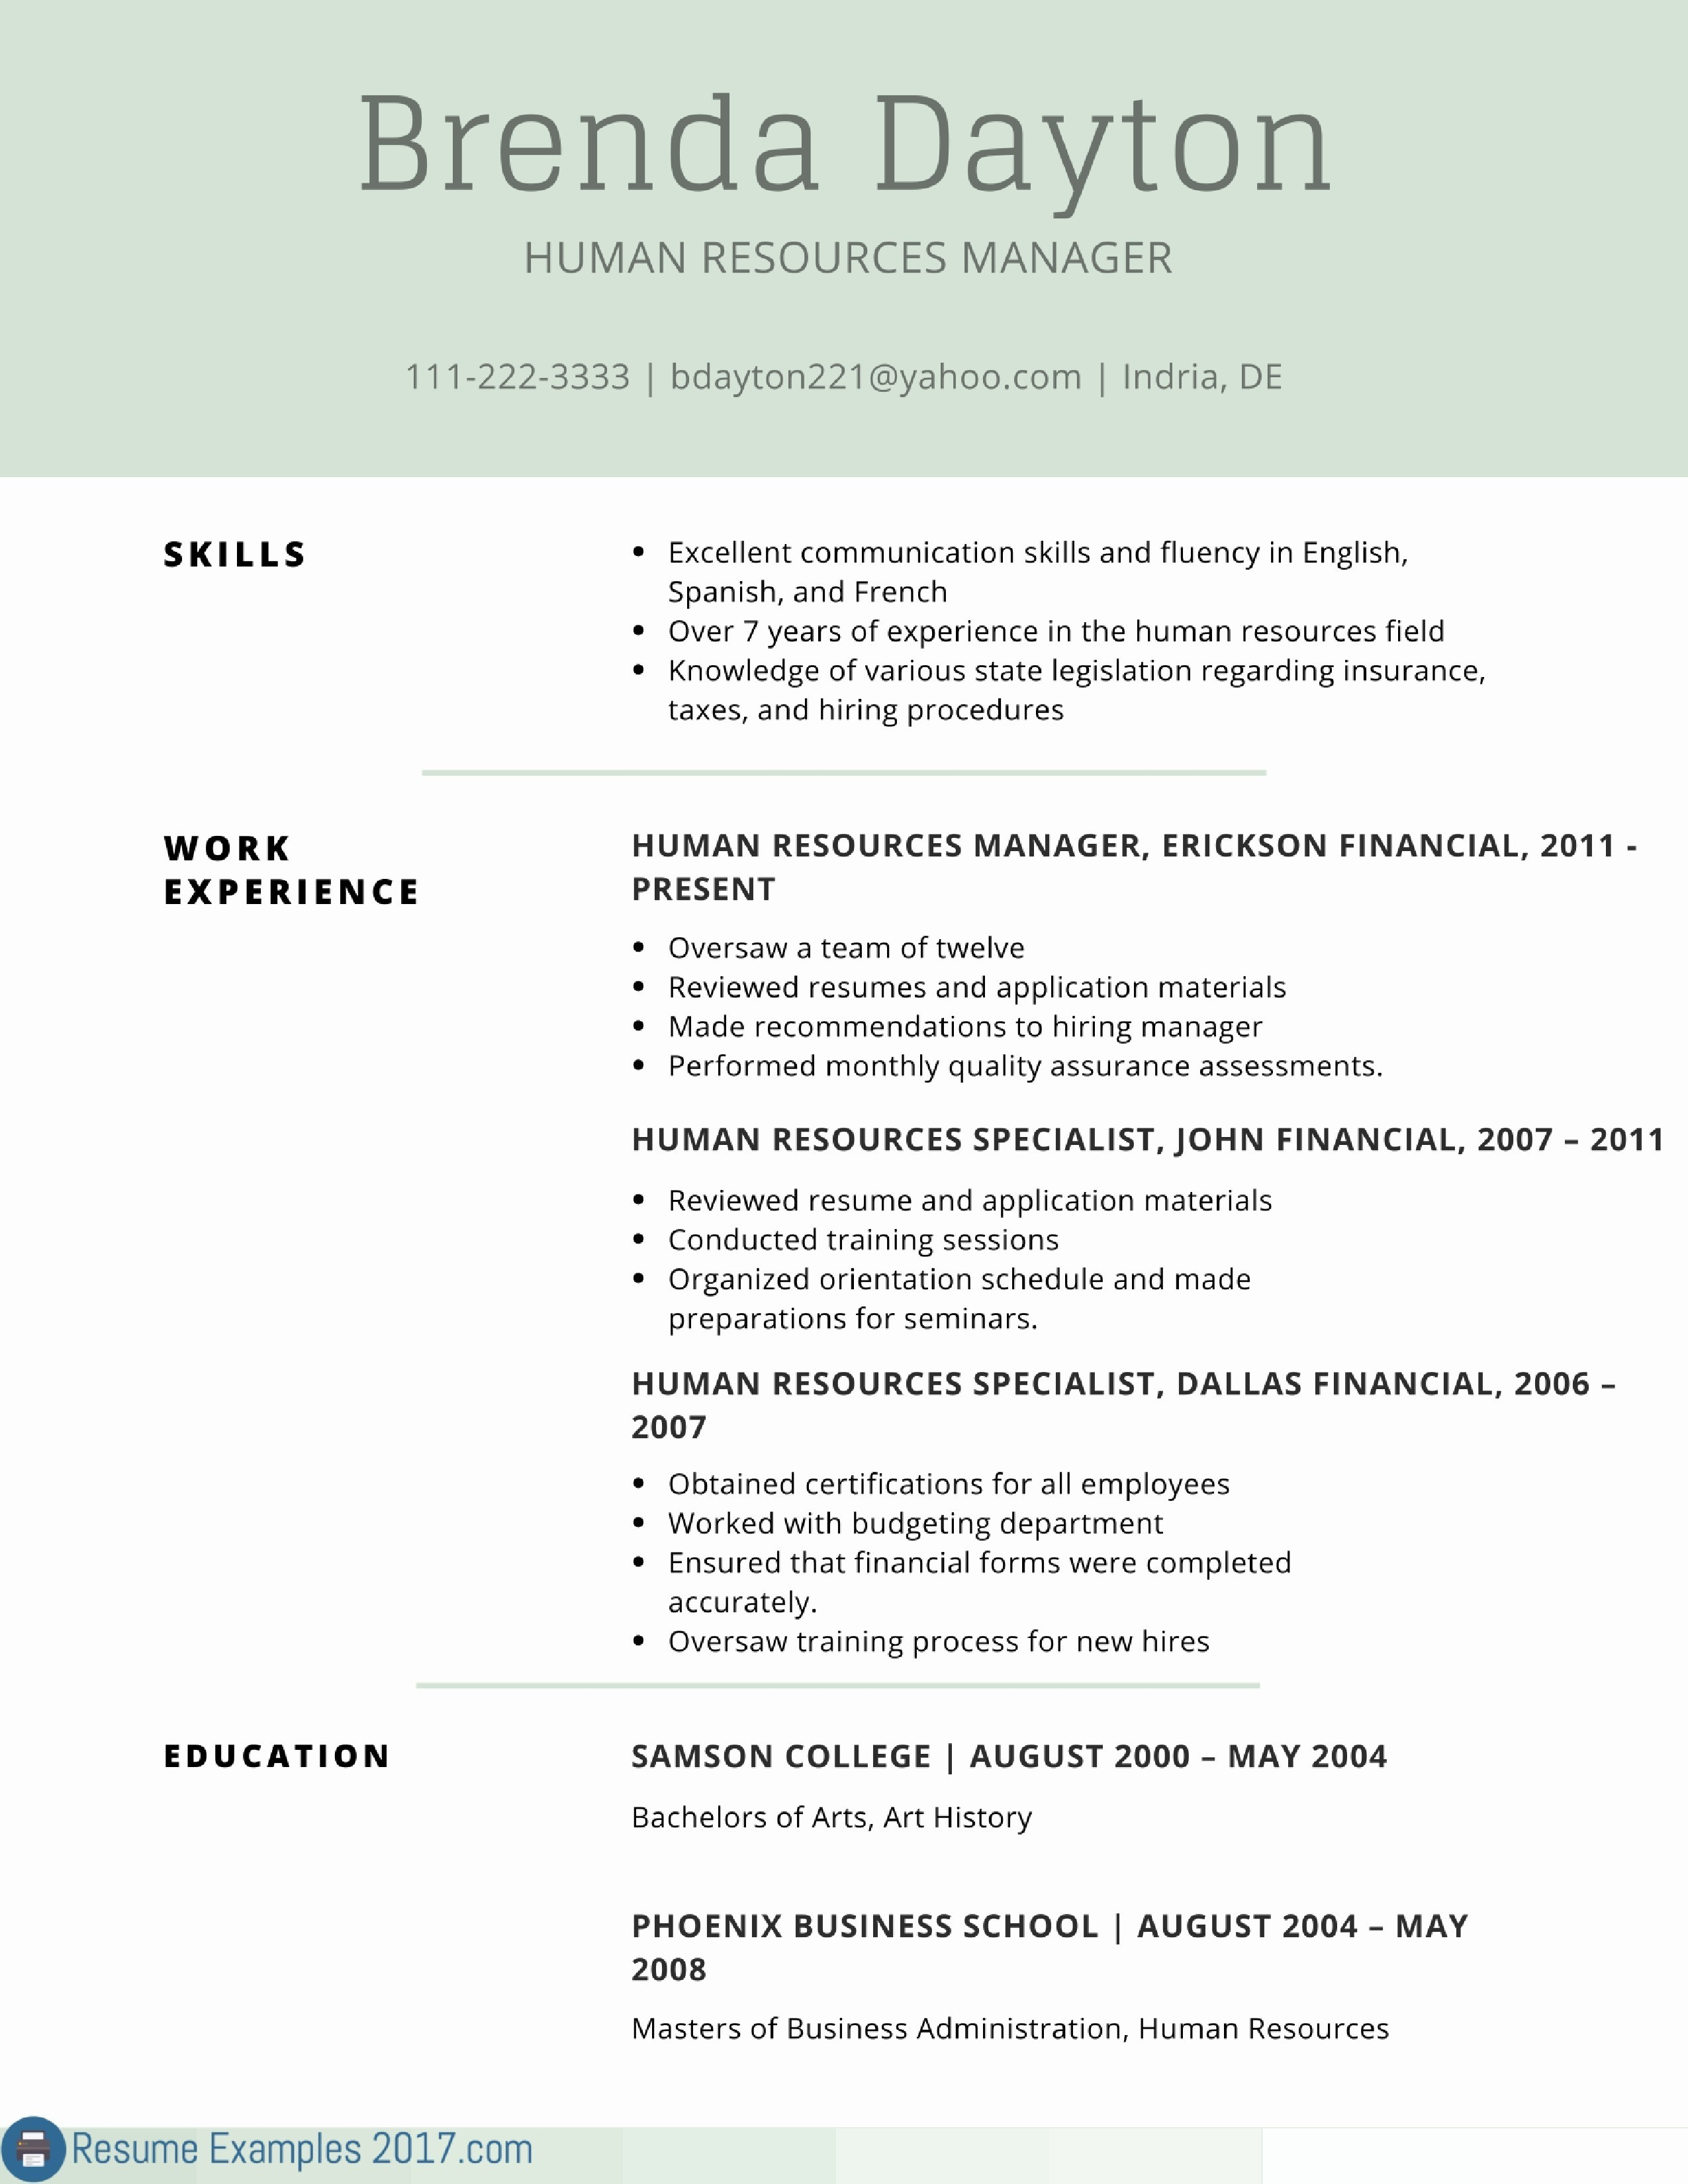 Hair Stylist Resume Template - Free Stylish Resume Templates Beautiful Resume Template Free Word